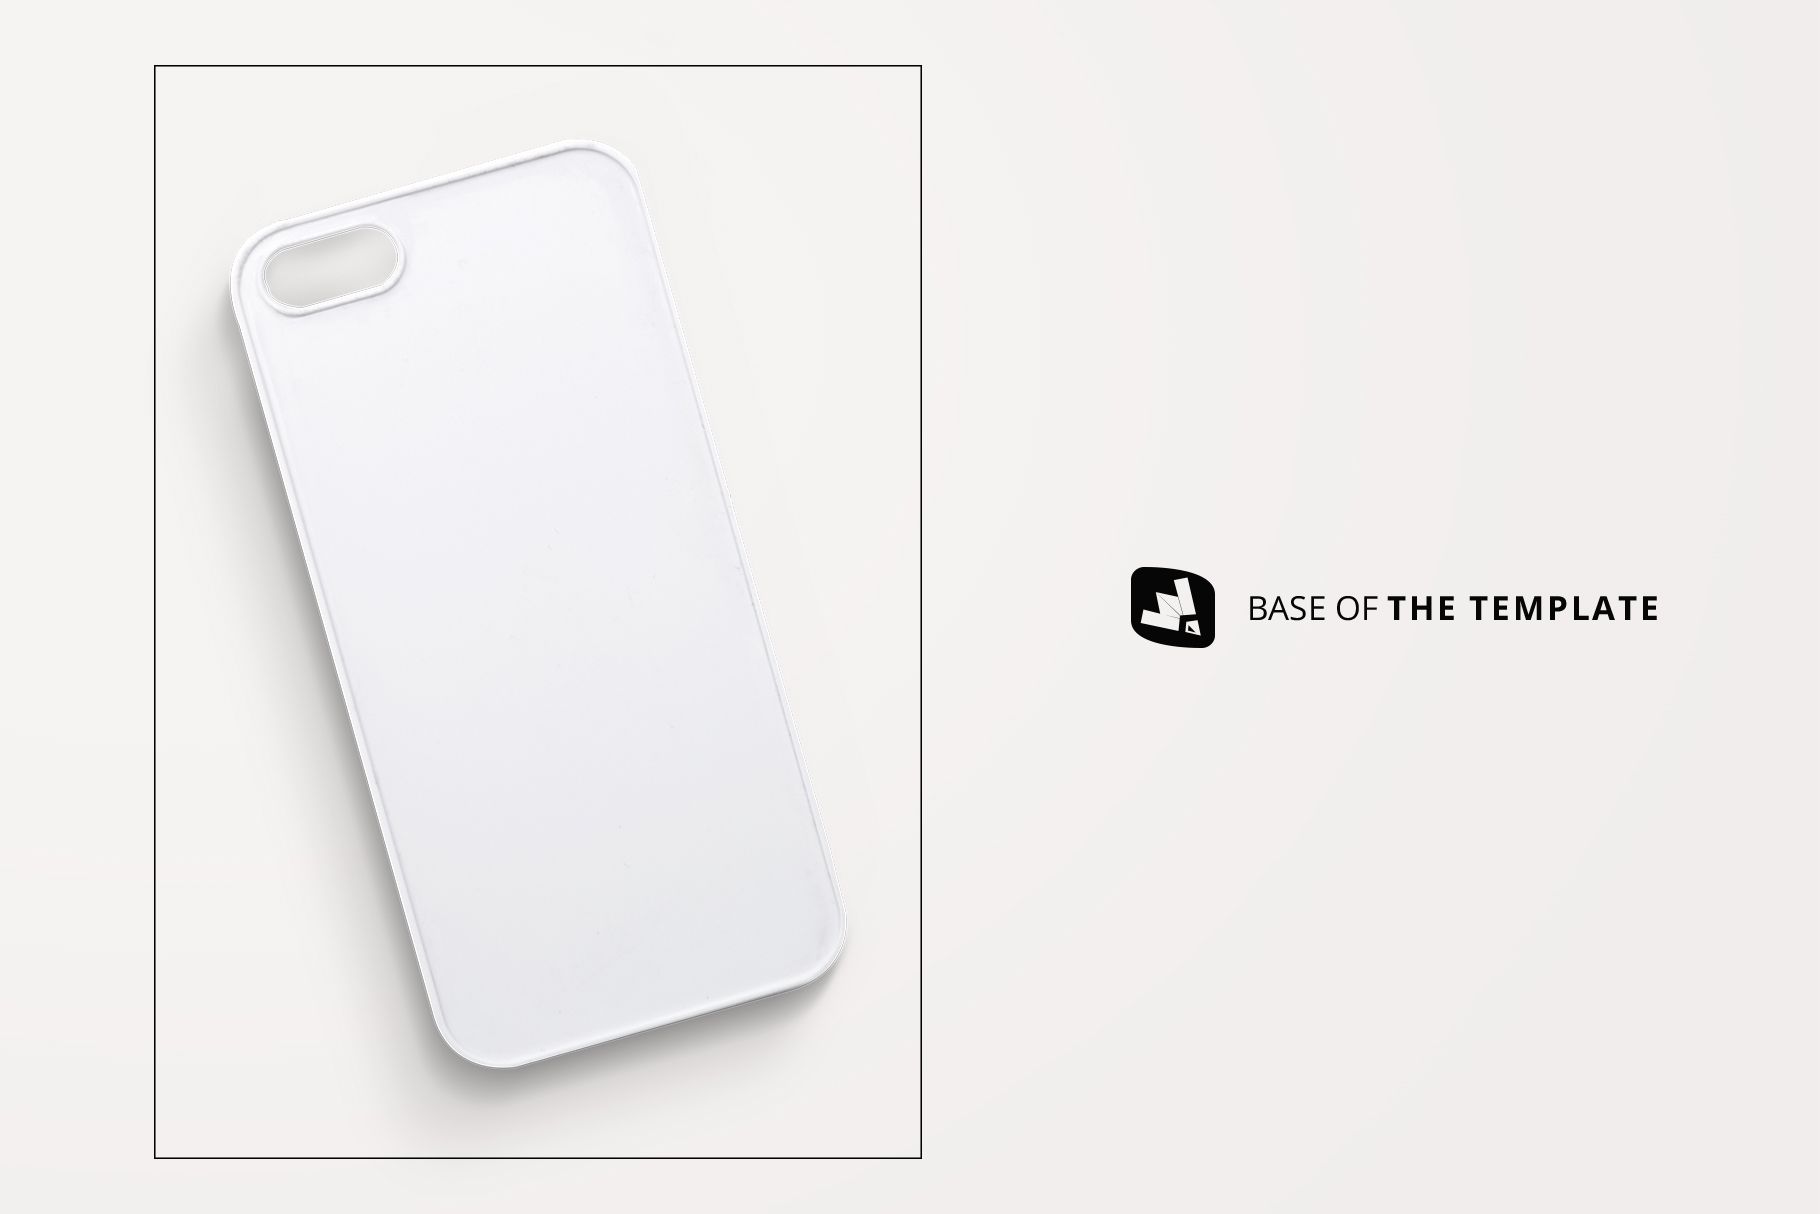 base image of the top view phone case mockup